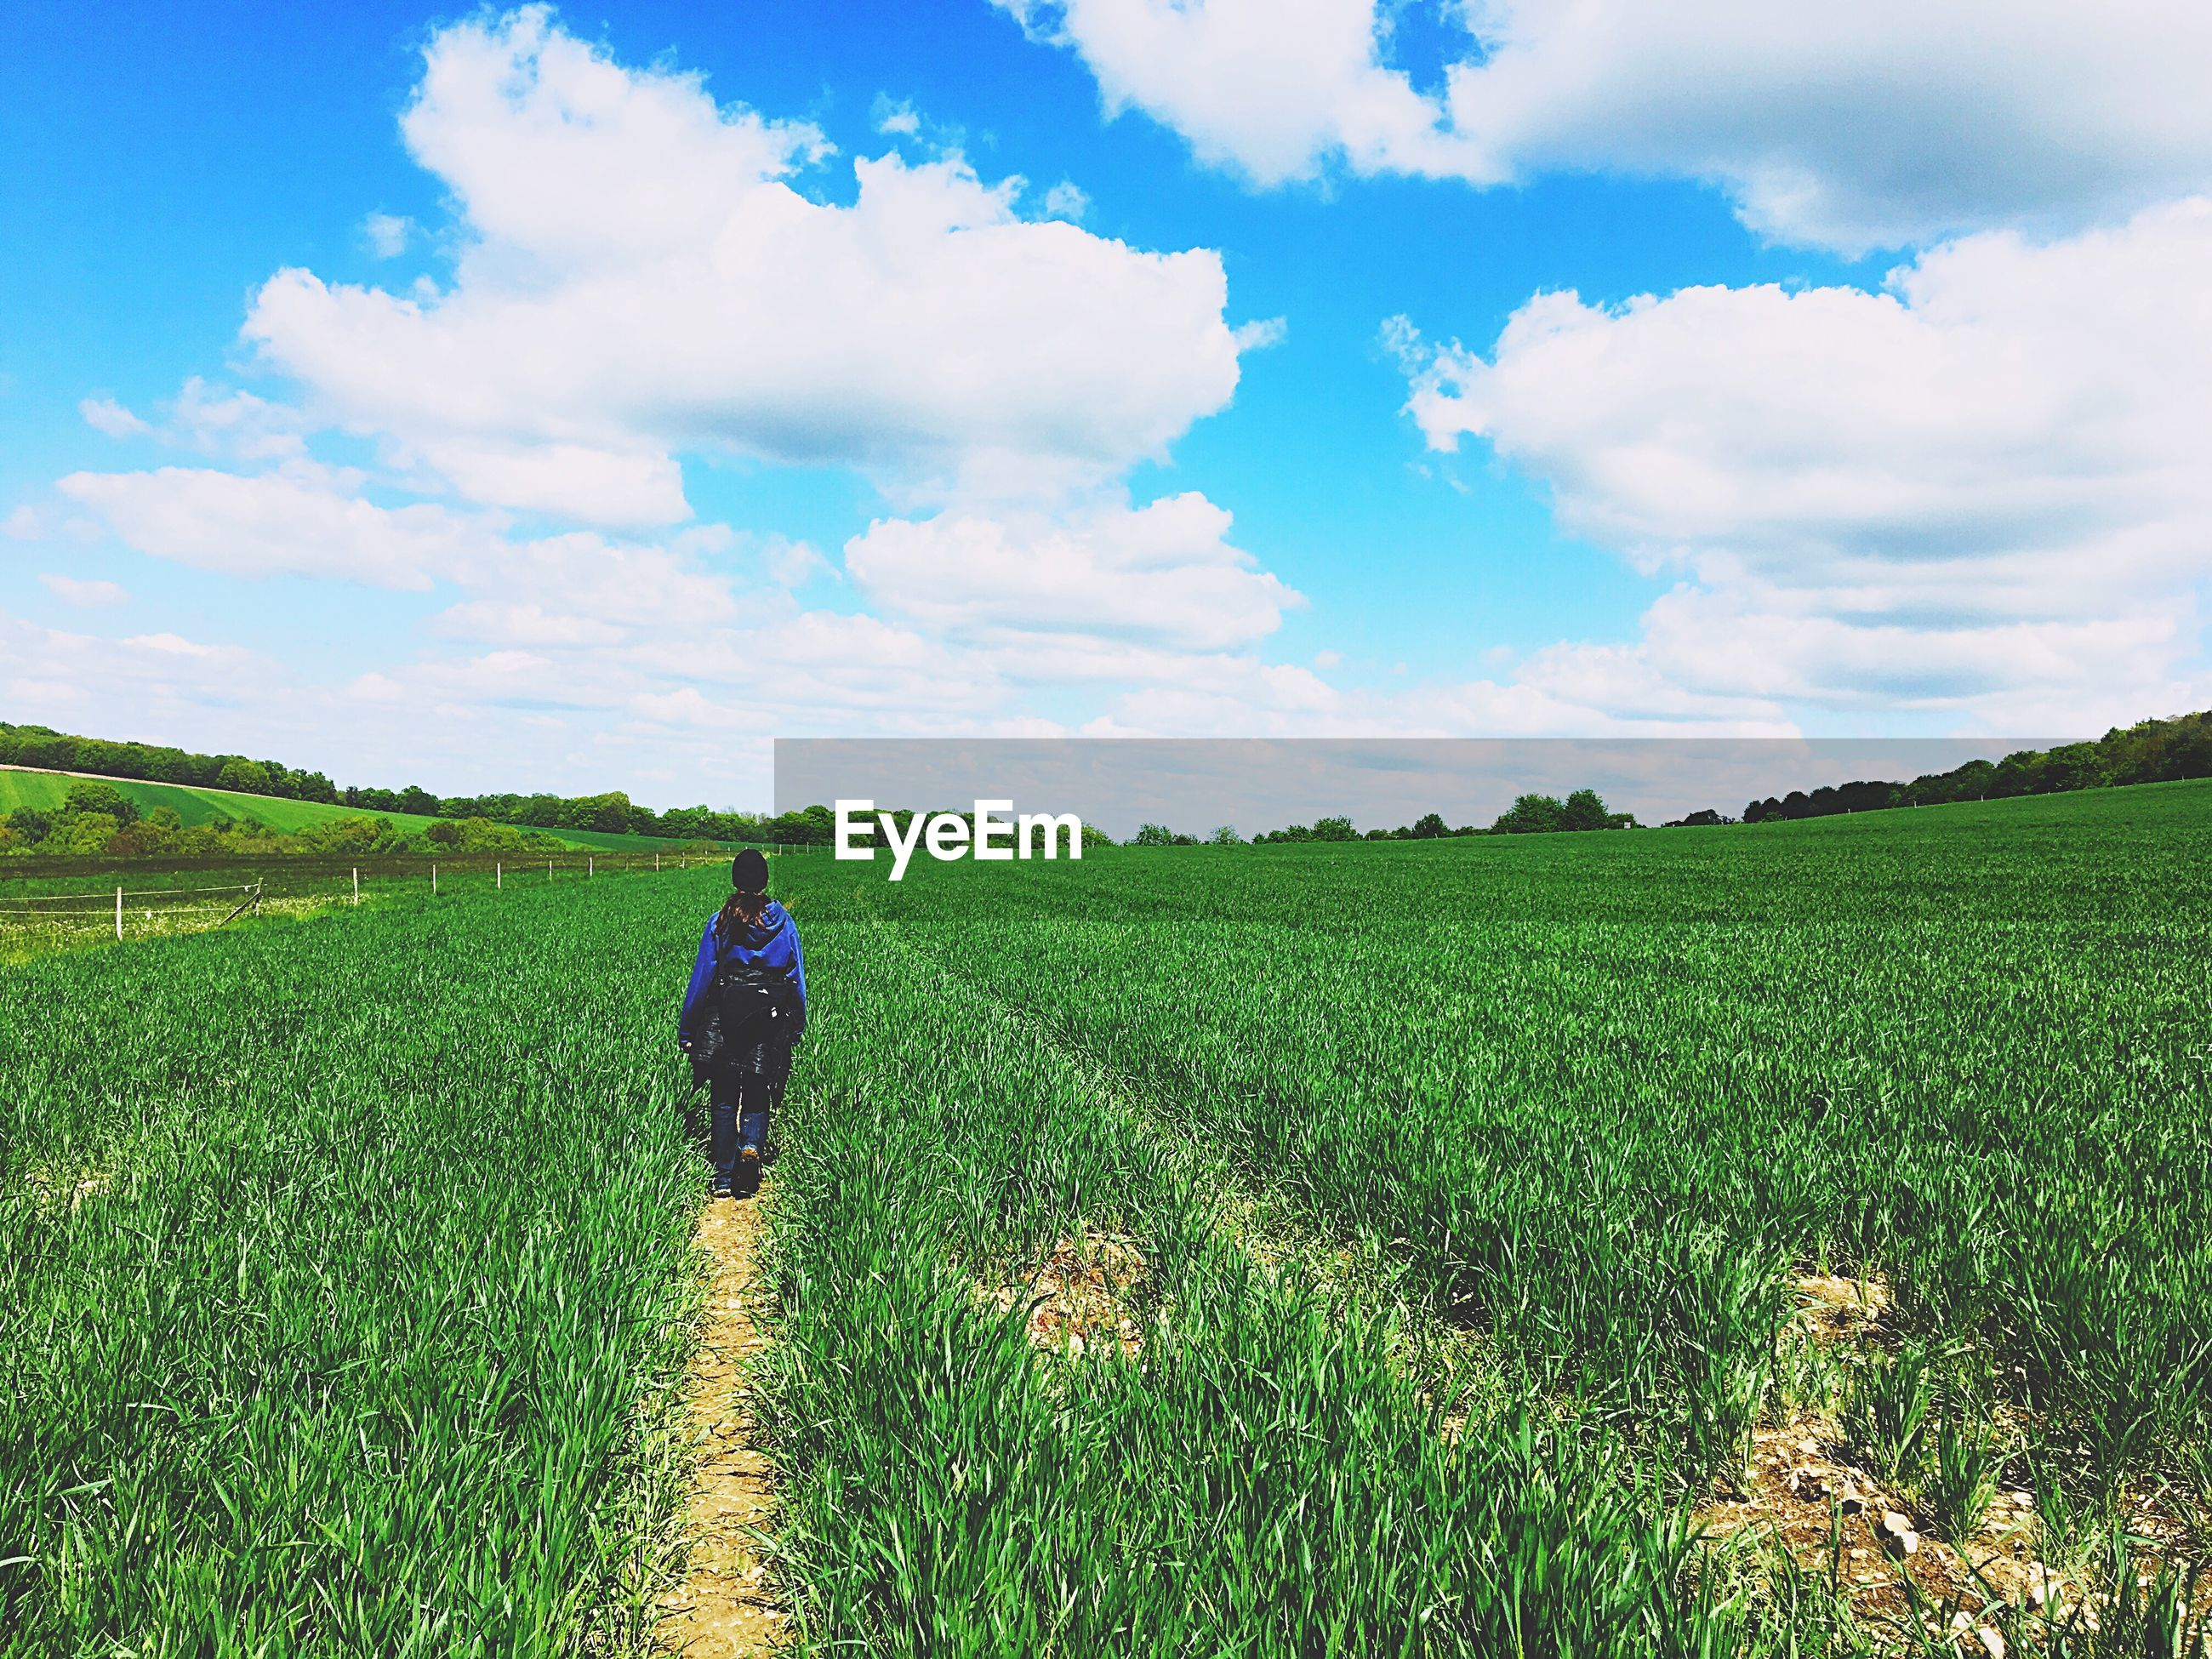 Woman walking on agricultural field